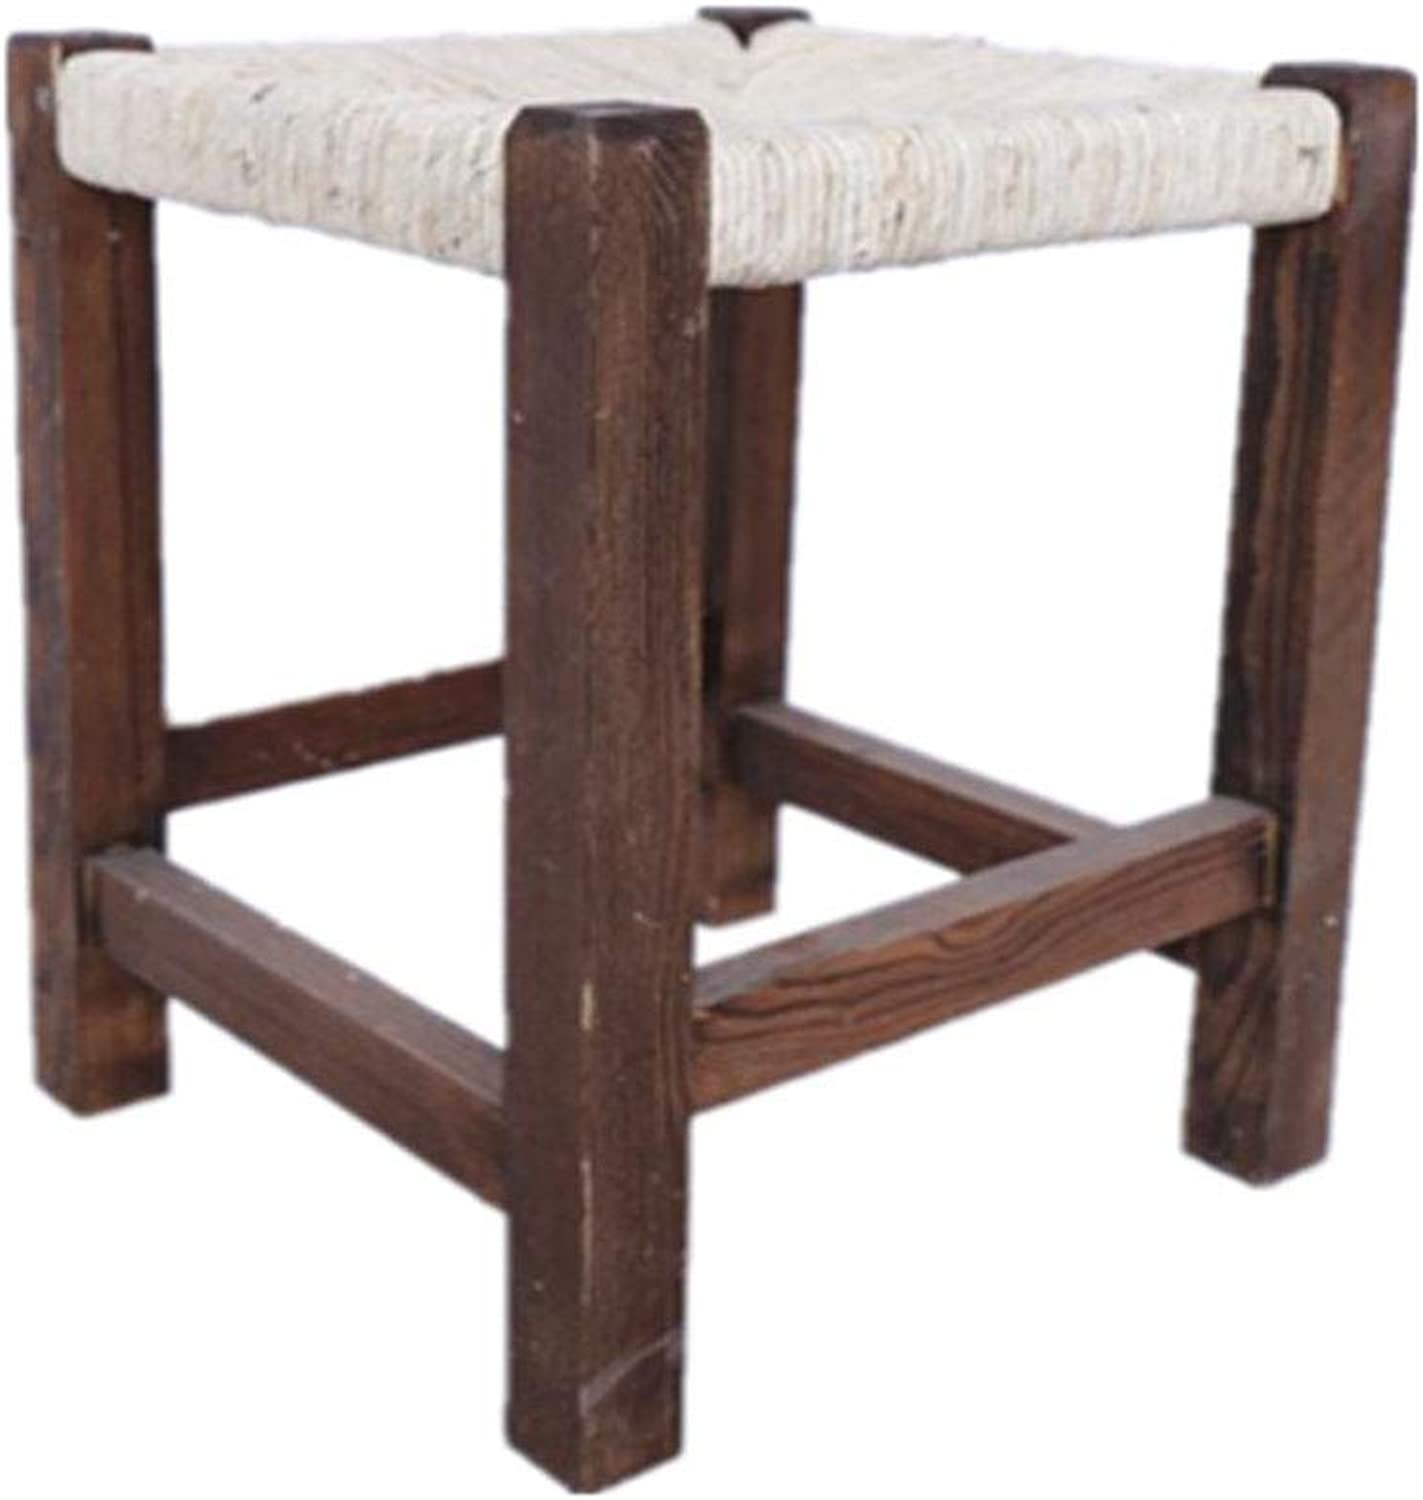 GWM Sofa Stool Solid Wood Stool - High Square Stool Carbonized Fashion High Stool Rattan Tea Stool Modern Minimalist Dining Table Stool Coffee Table Stool Sofa Stool